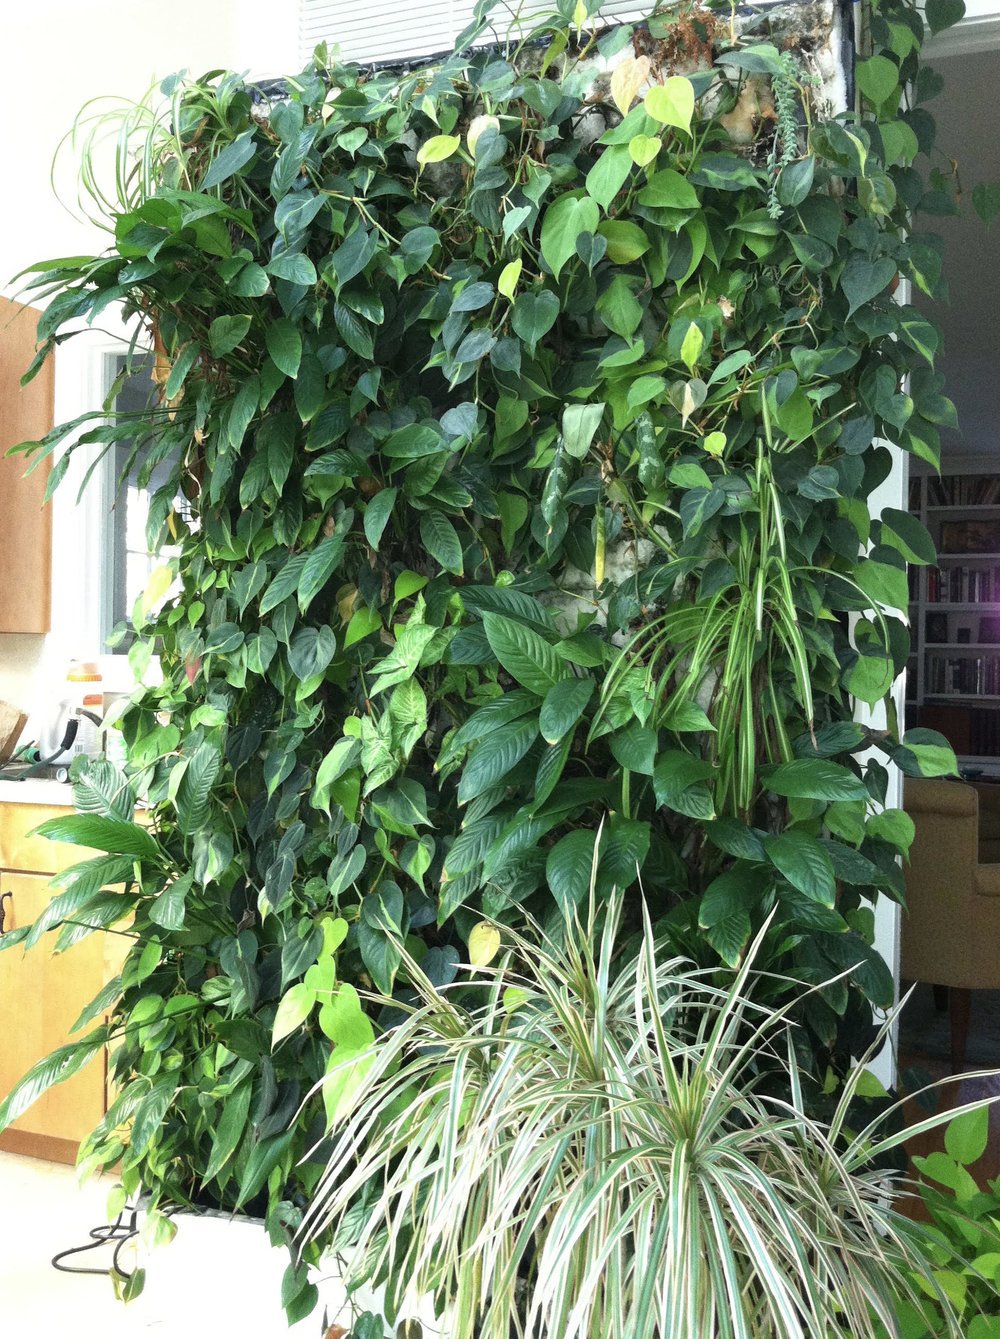 Ruth Kassinger's green wall. Click on the image for a closer look.